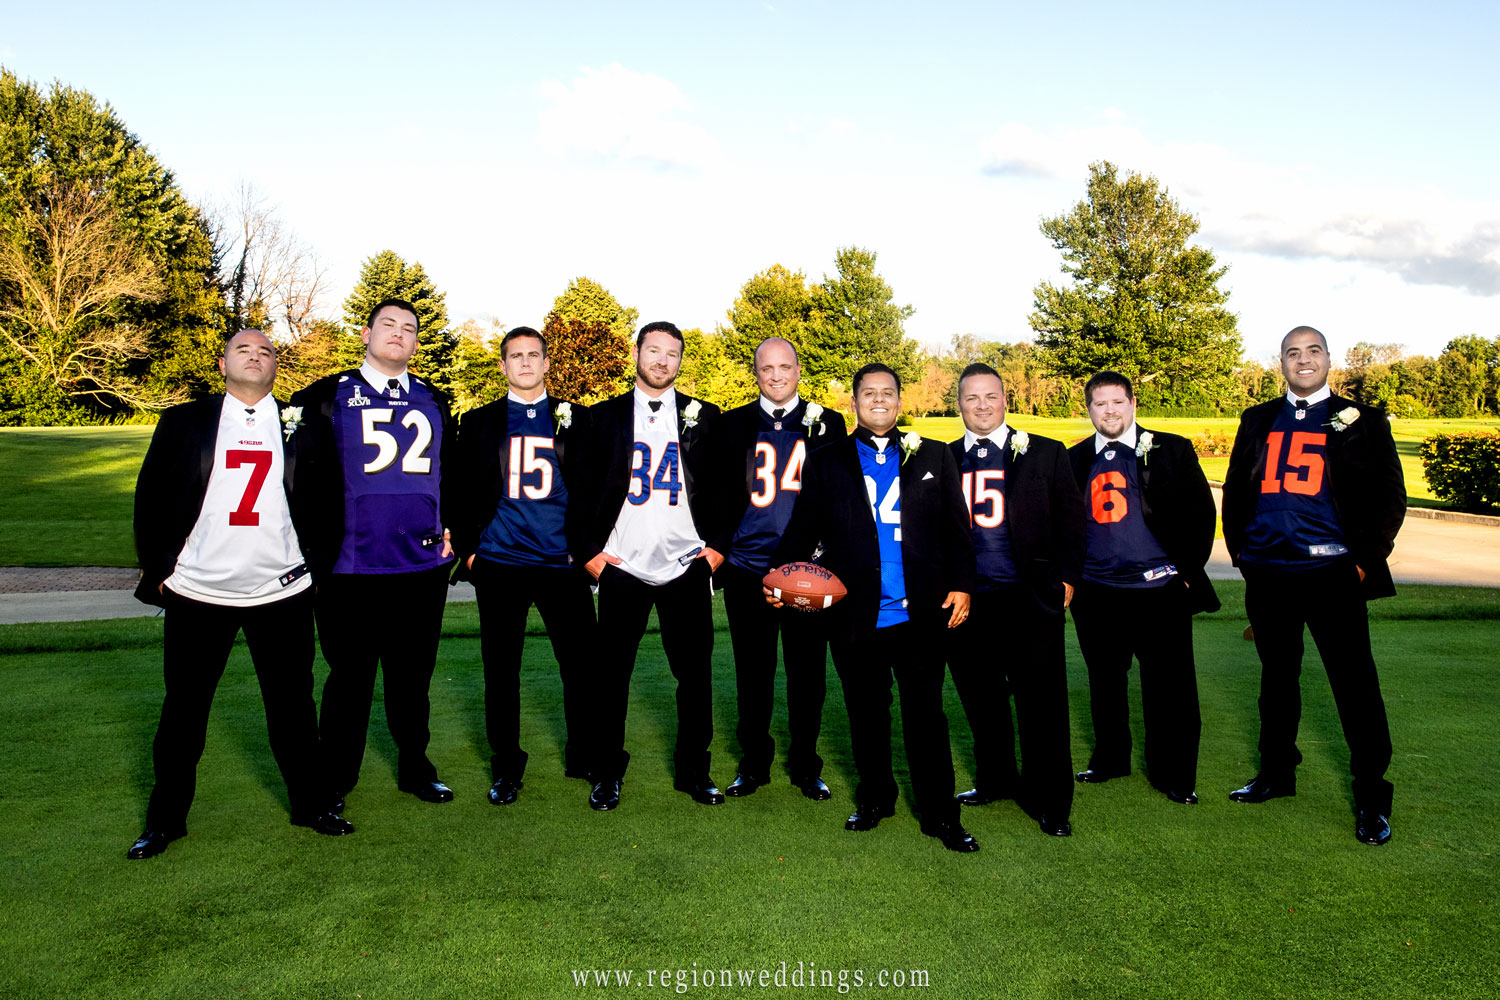 The groomsmen wear the jersey to their favorite football team for a fun wedding photo.